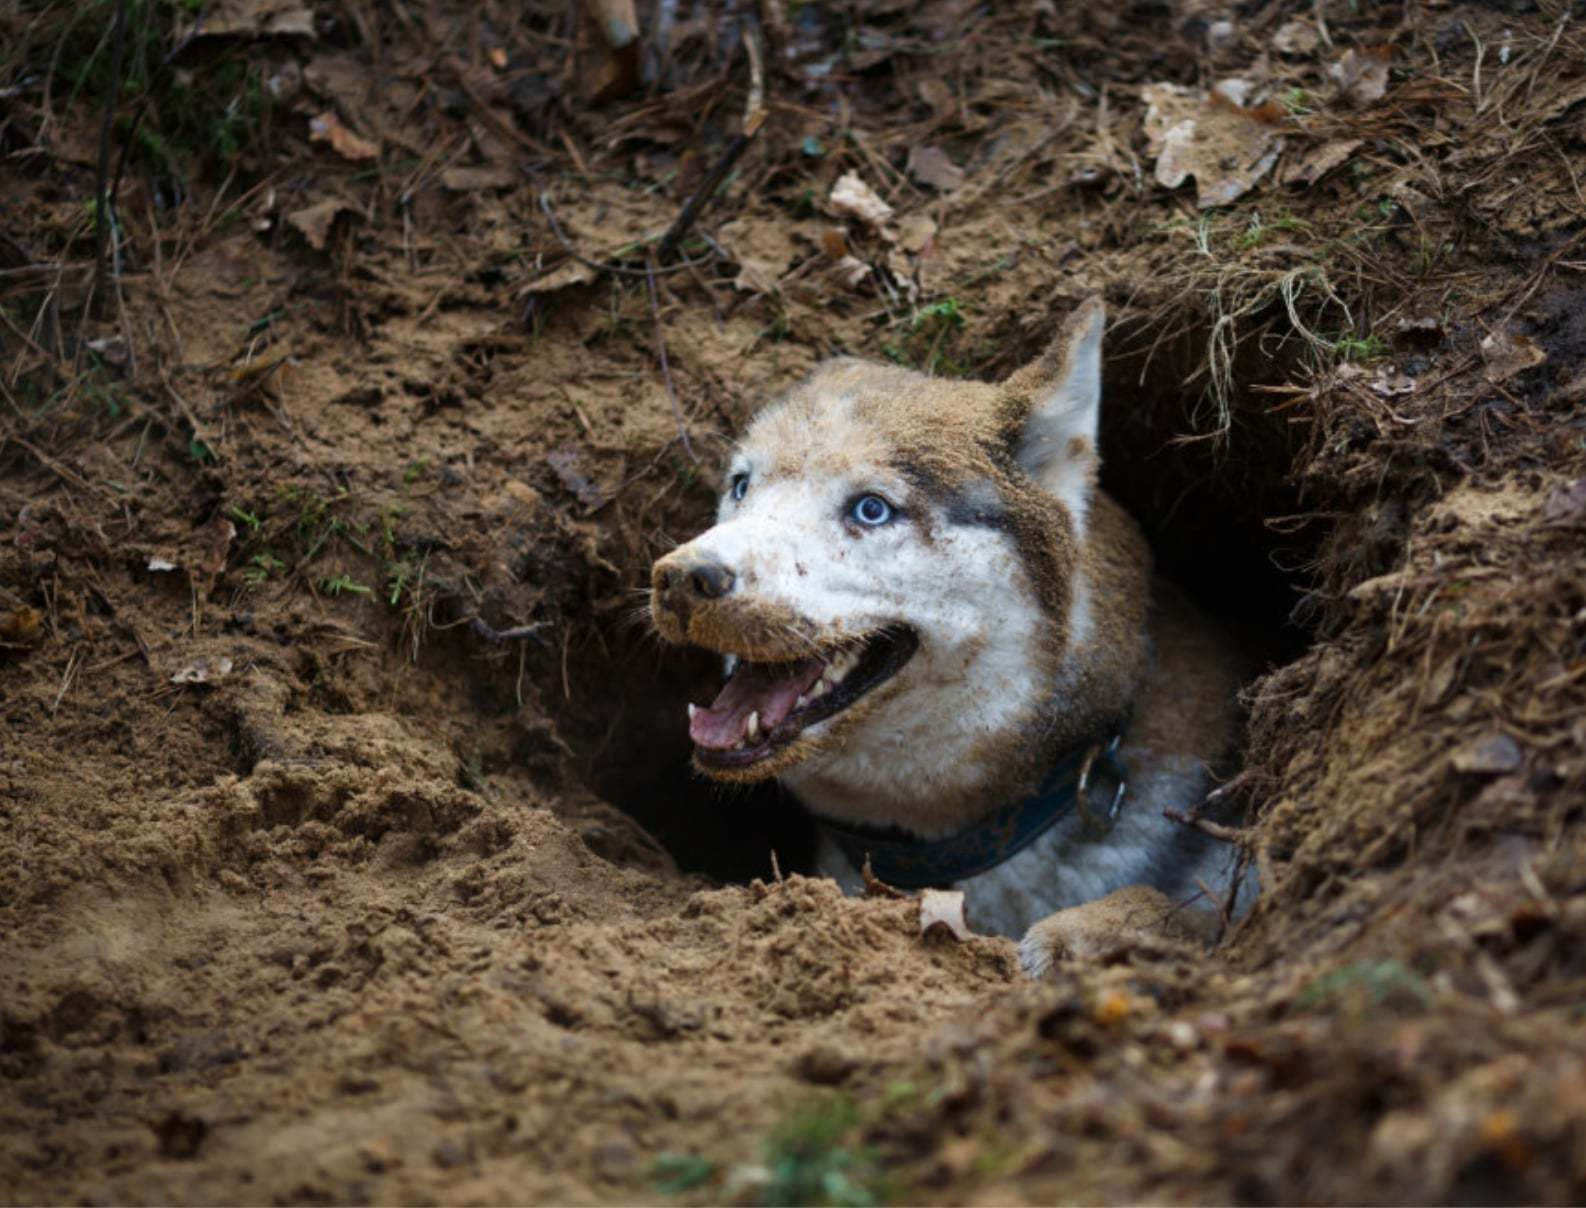 dog digging a hole can be solved with positive reinforcement